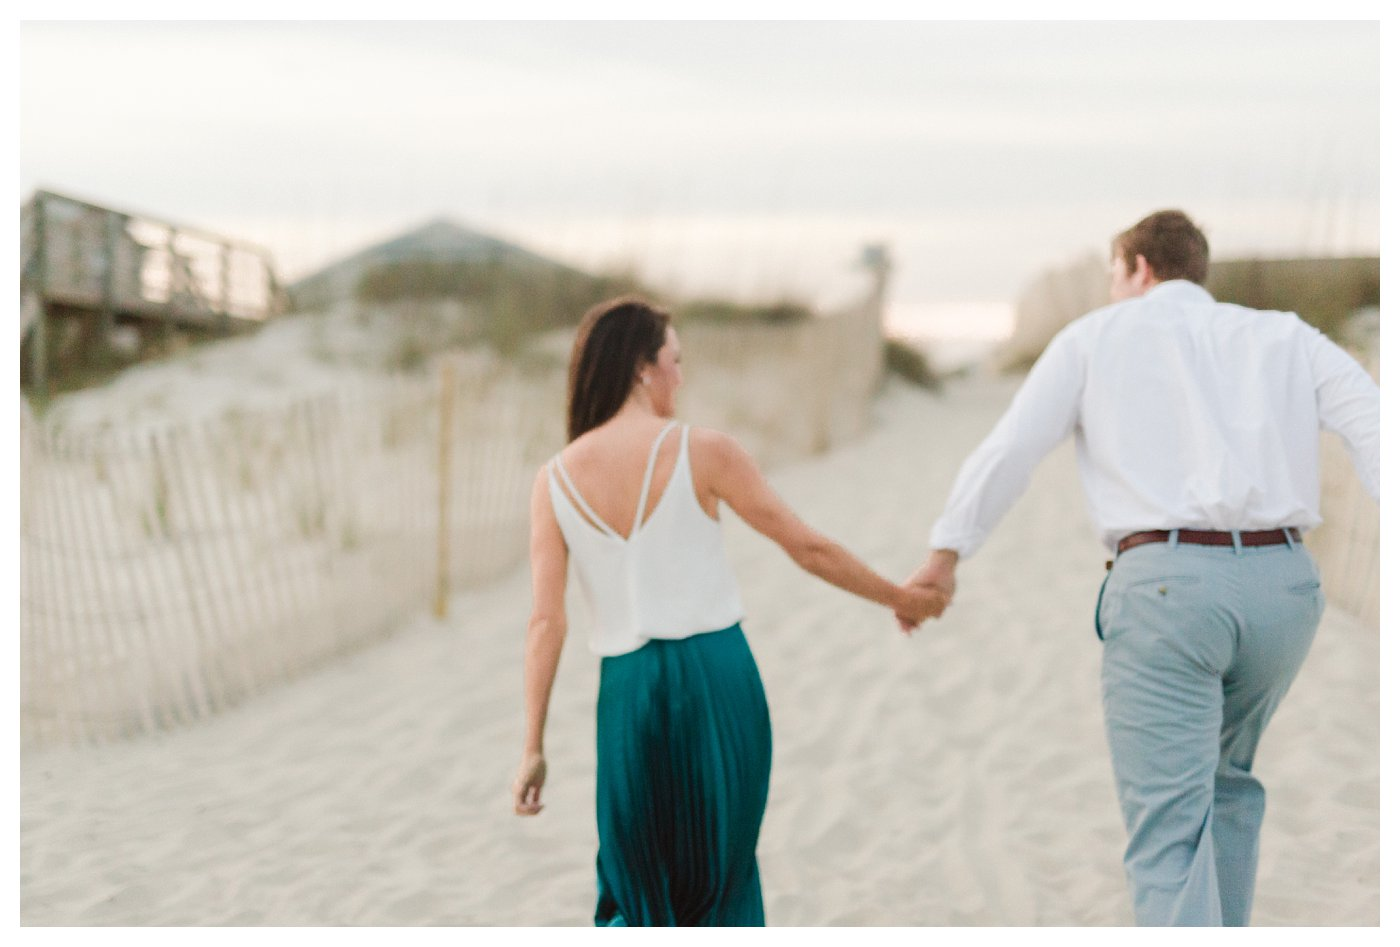 Coastal Ocean Isle Beach Engagement Session by Amanda and Grady Photogrpahy